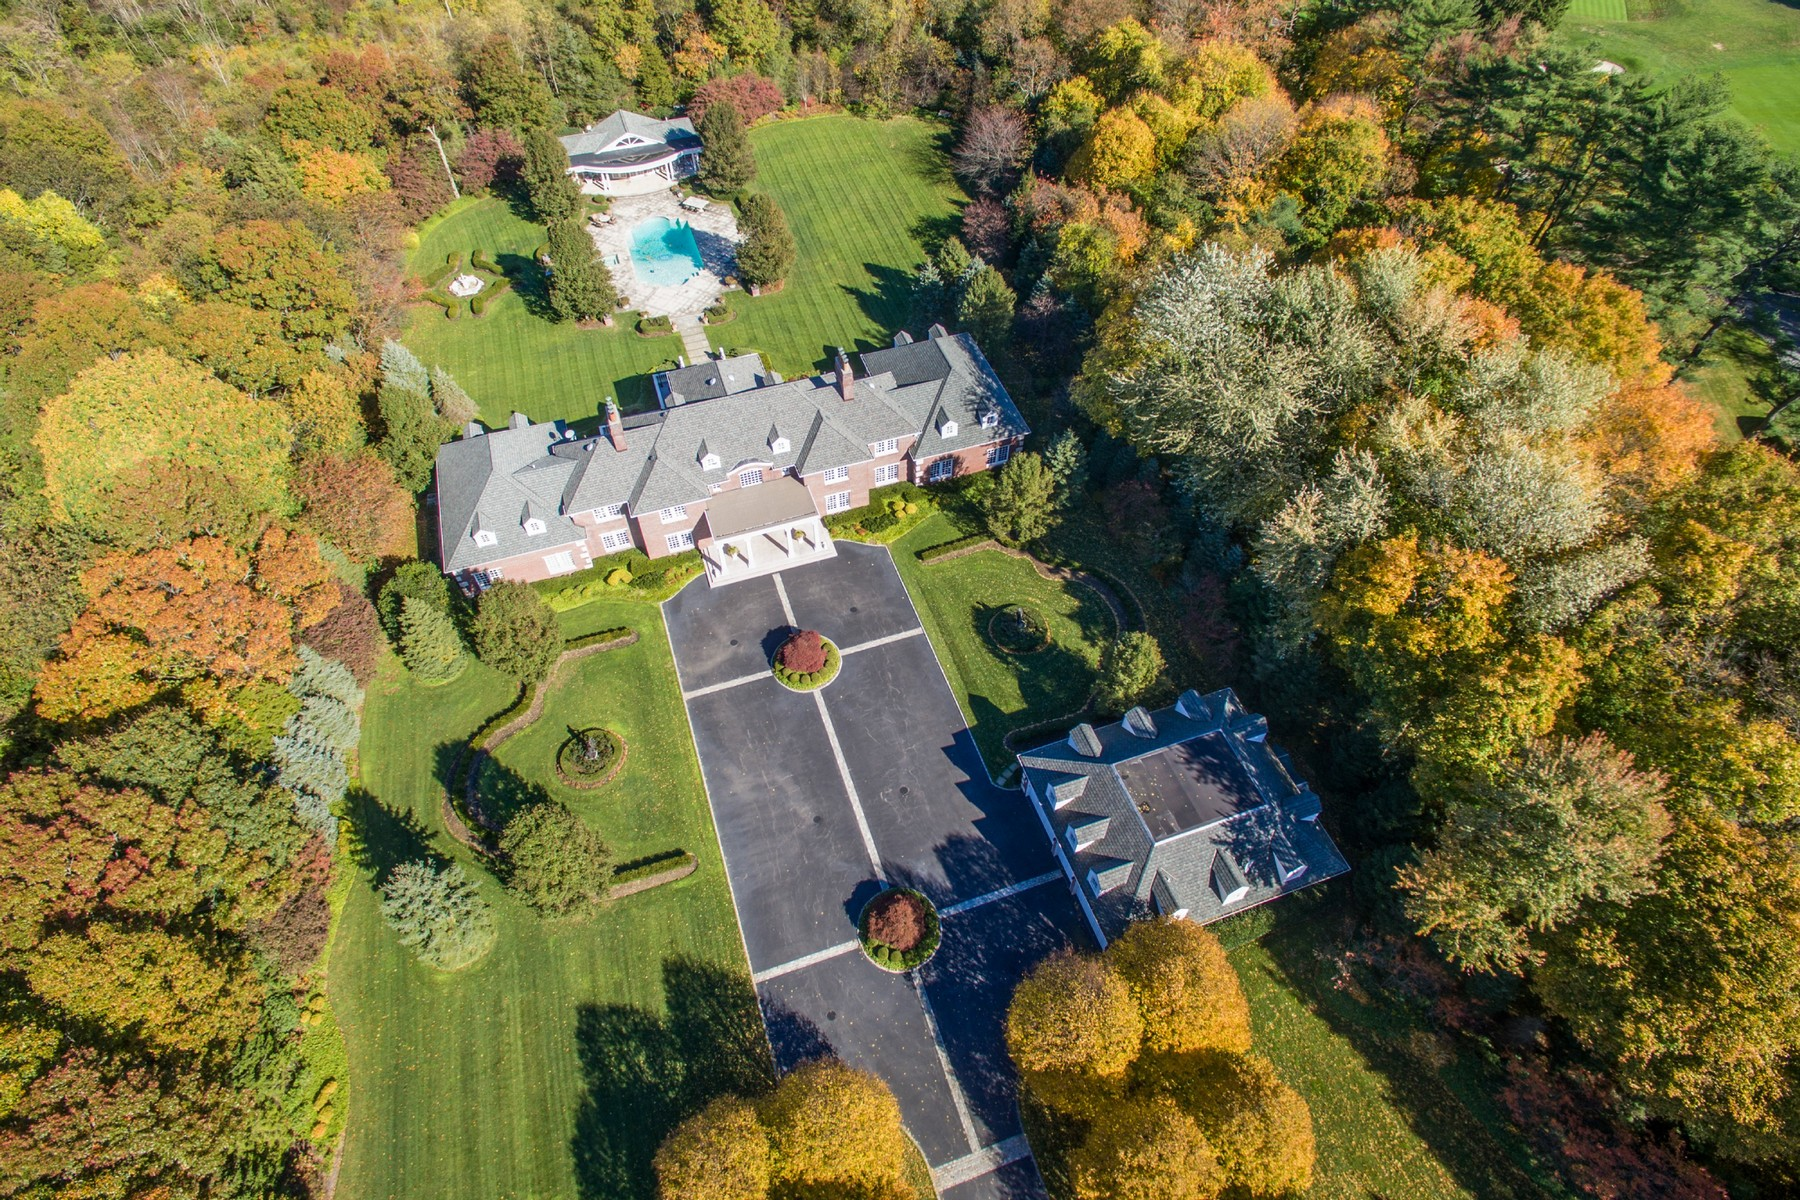 Single Family Home for Sale at Estate 1 Bel Air Ct Upper Brookville, New York, 11771 United States